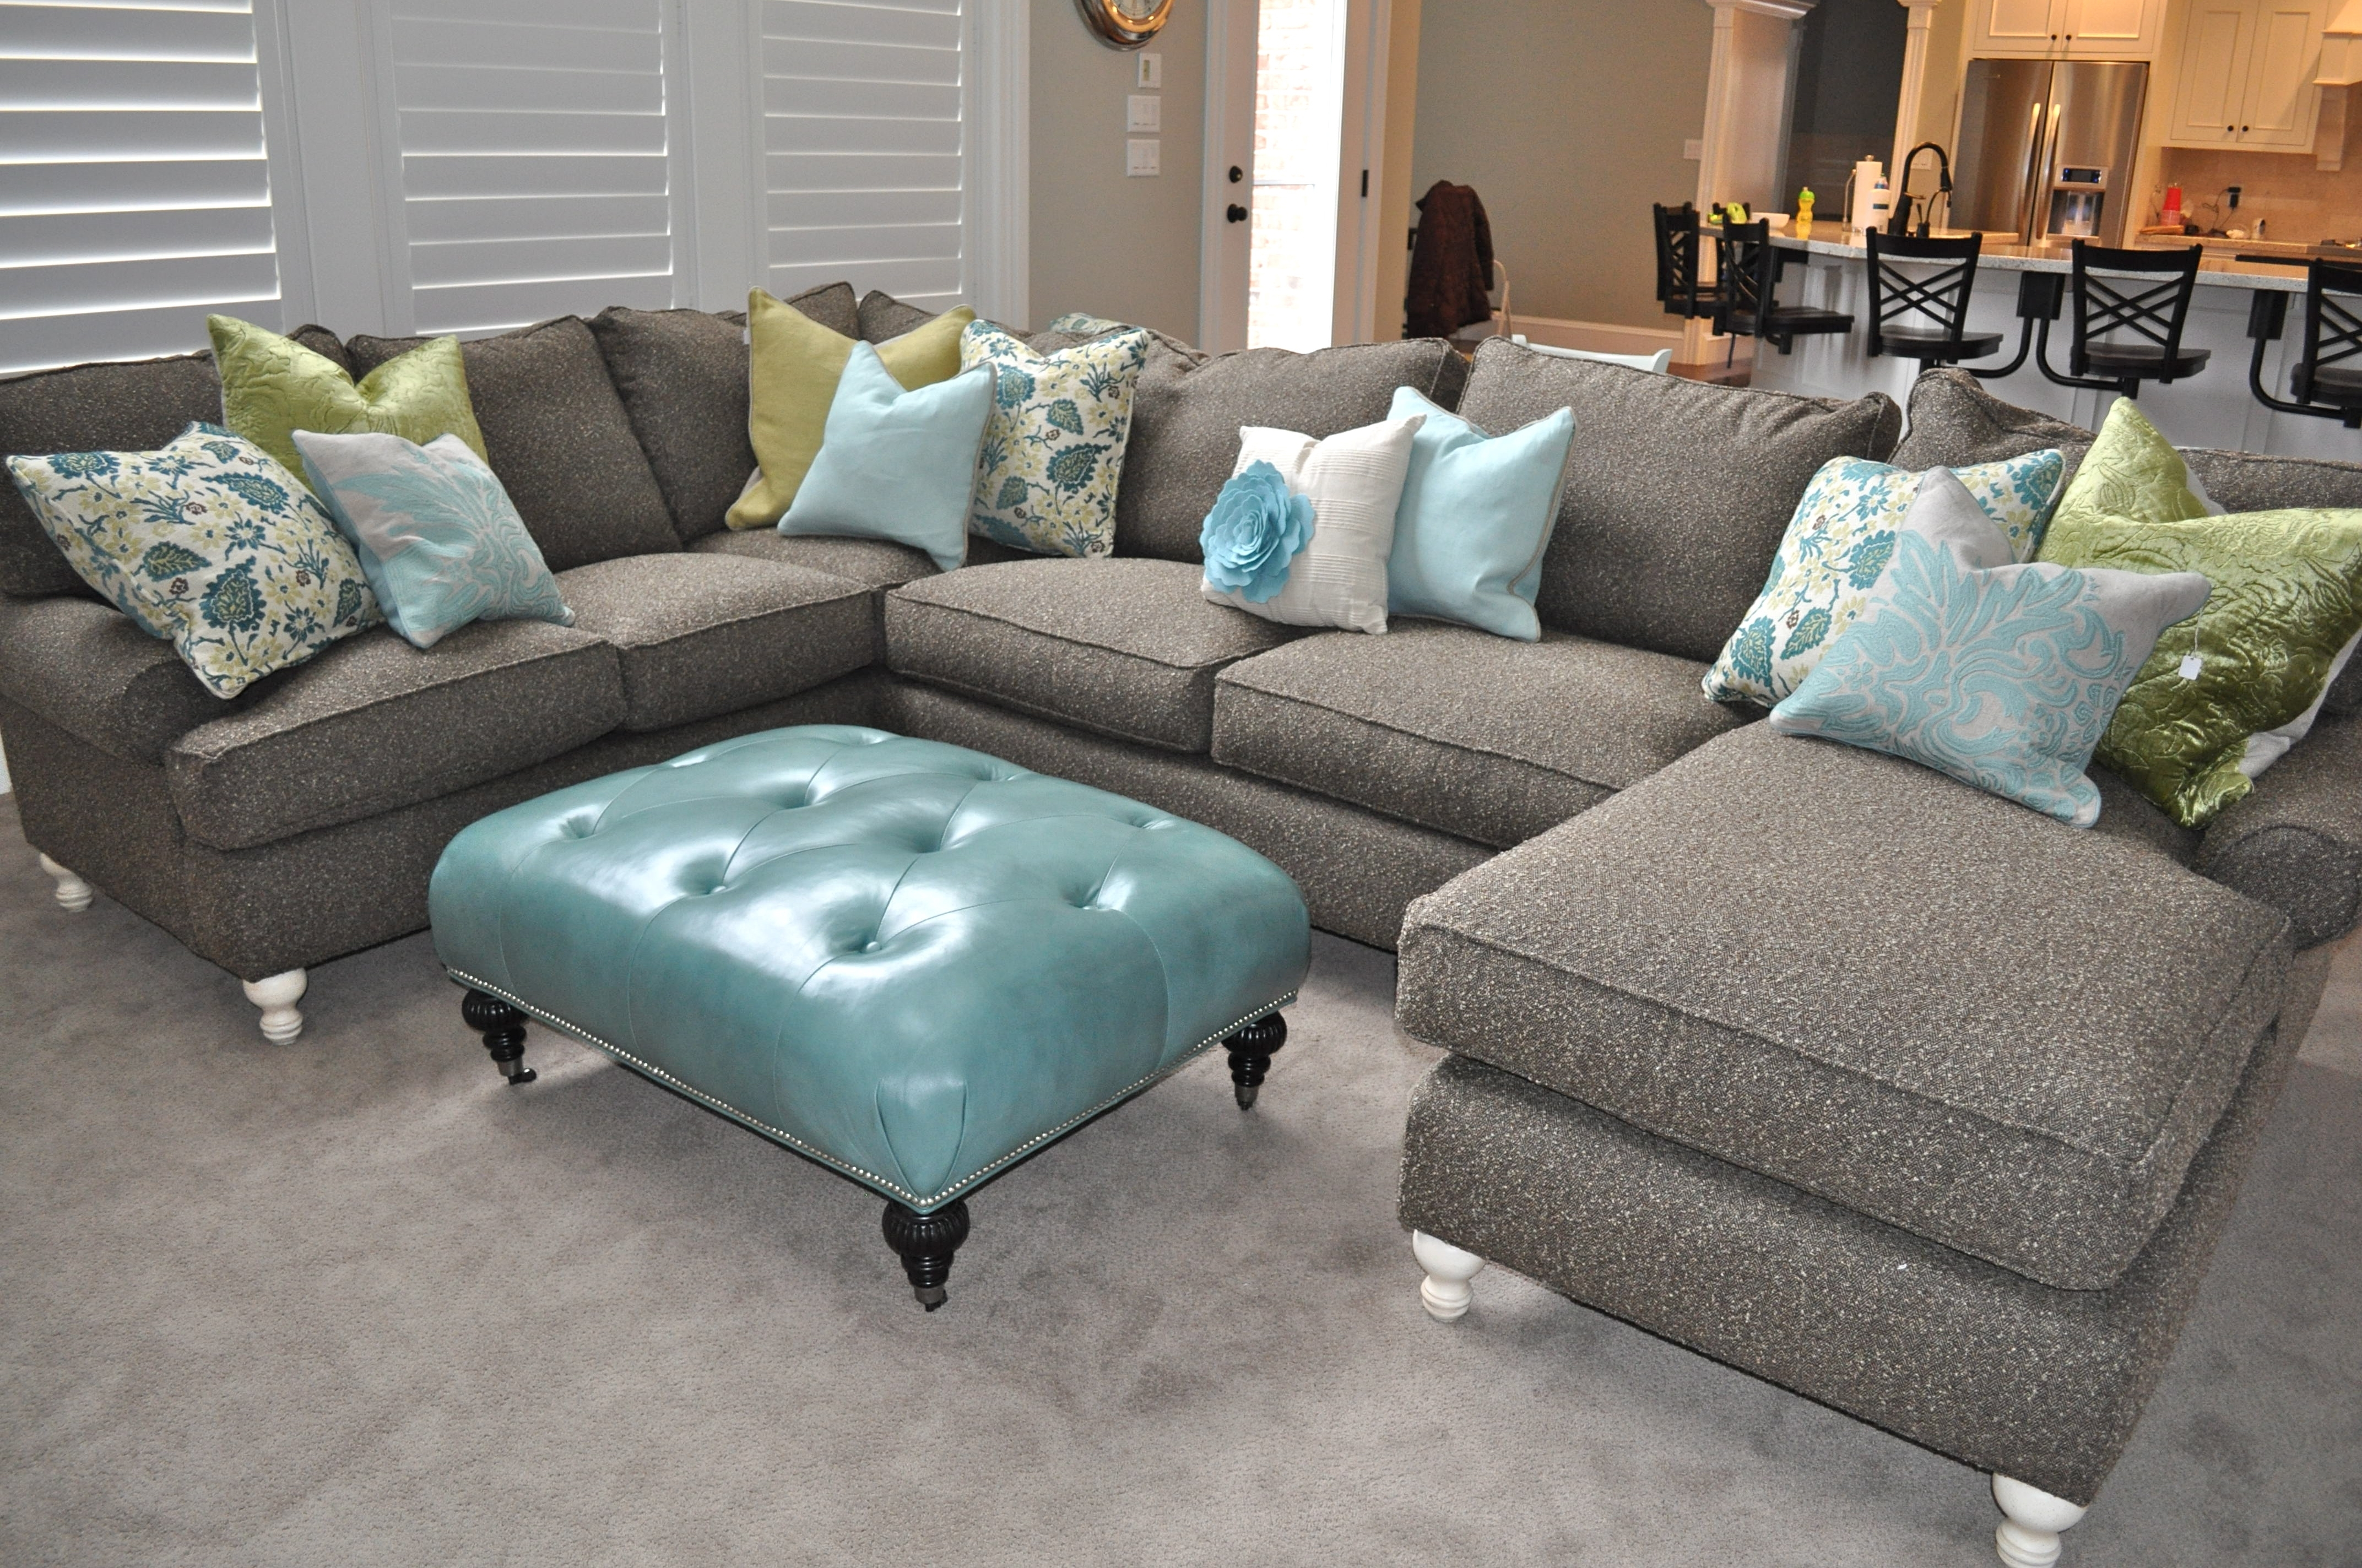 Well Liked Amusing Sectional Sofa With Chaise And Ottoman 81 On Charcoal Gray For Gray Sectional Sofas With Chaise (View 15 of 15)